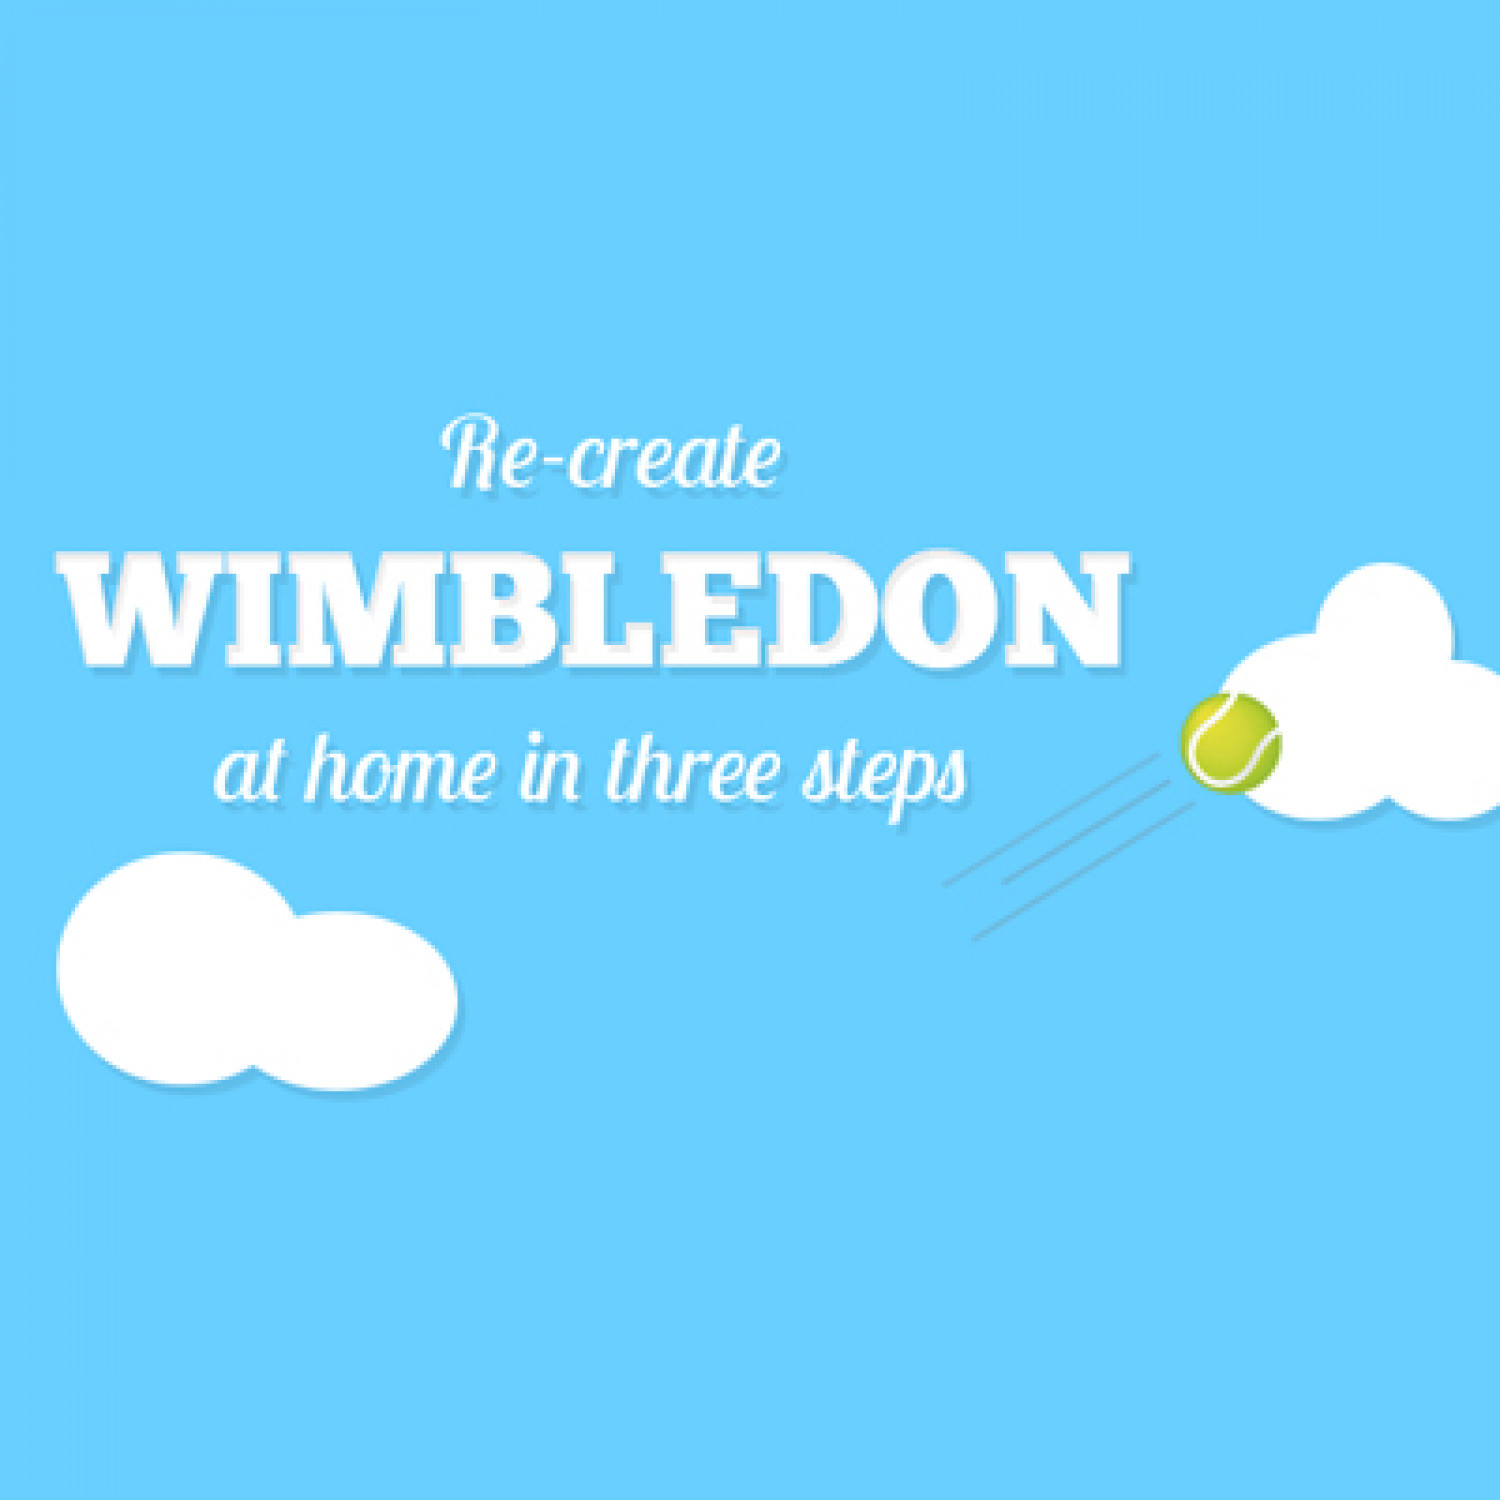 Recreate Wimbledon At Home in 3 Steps Infographic